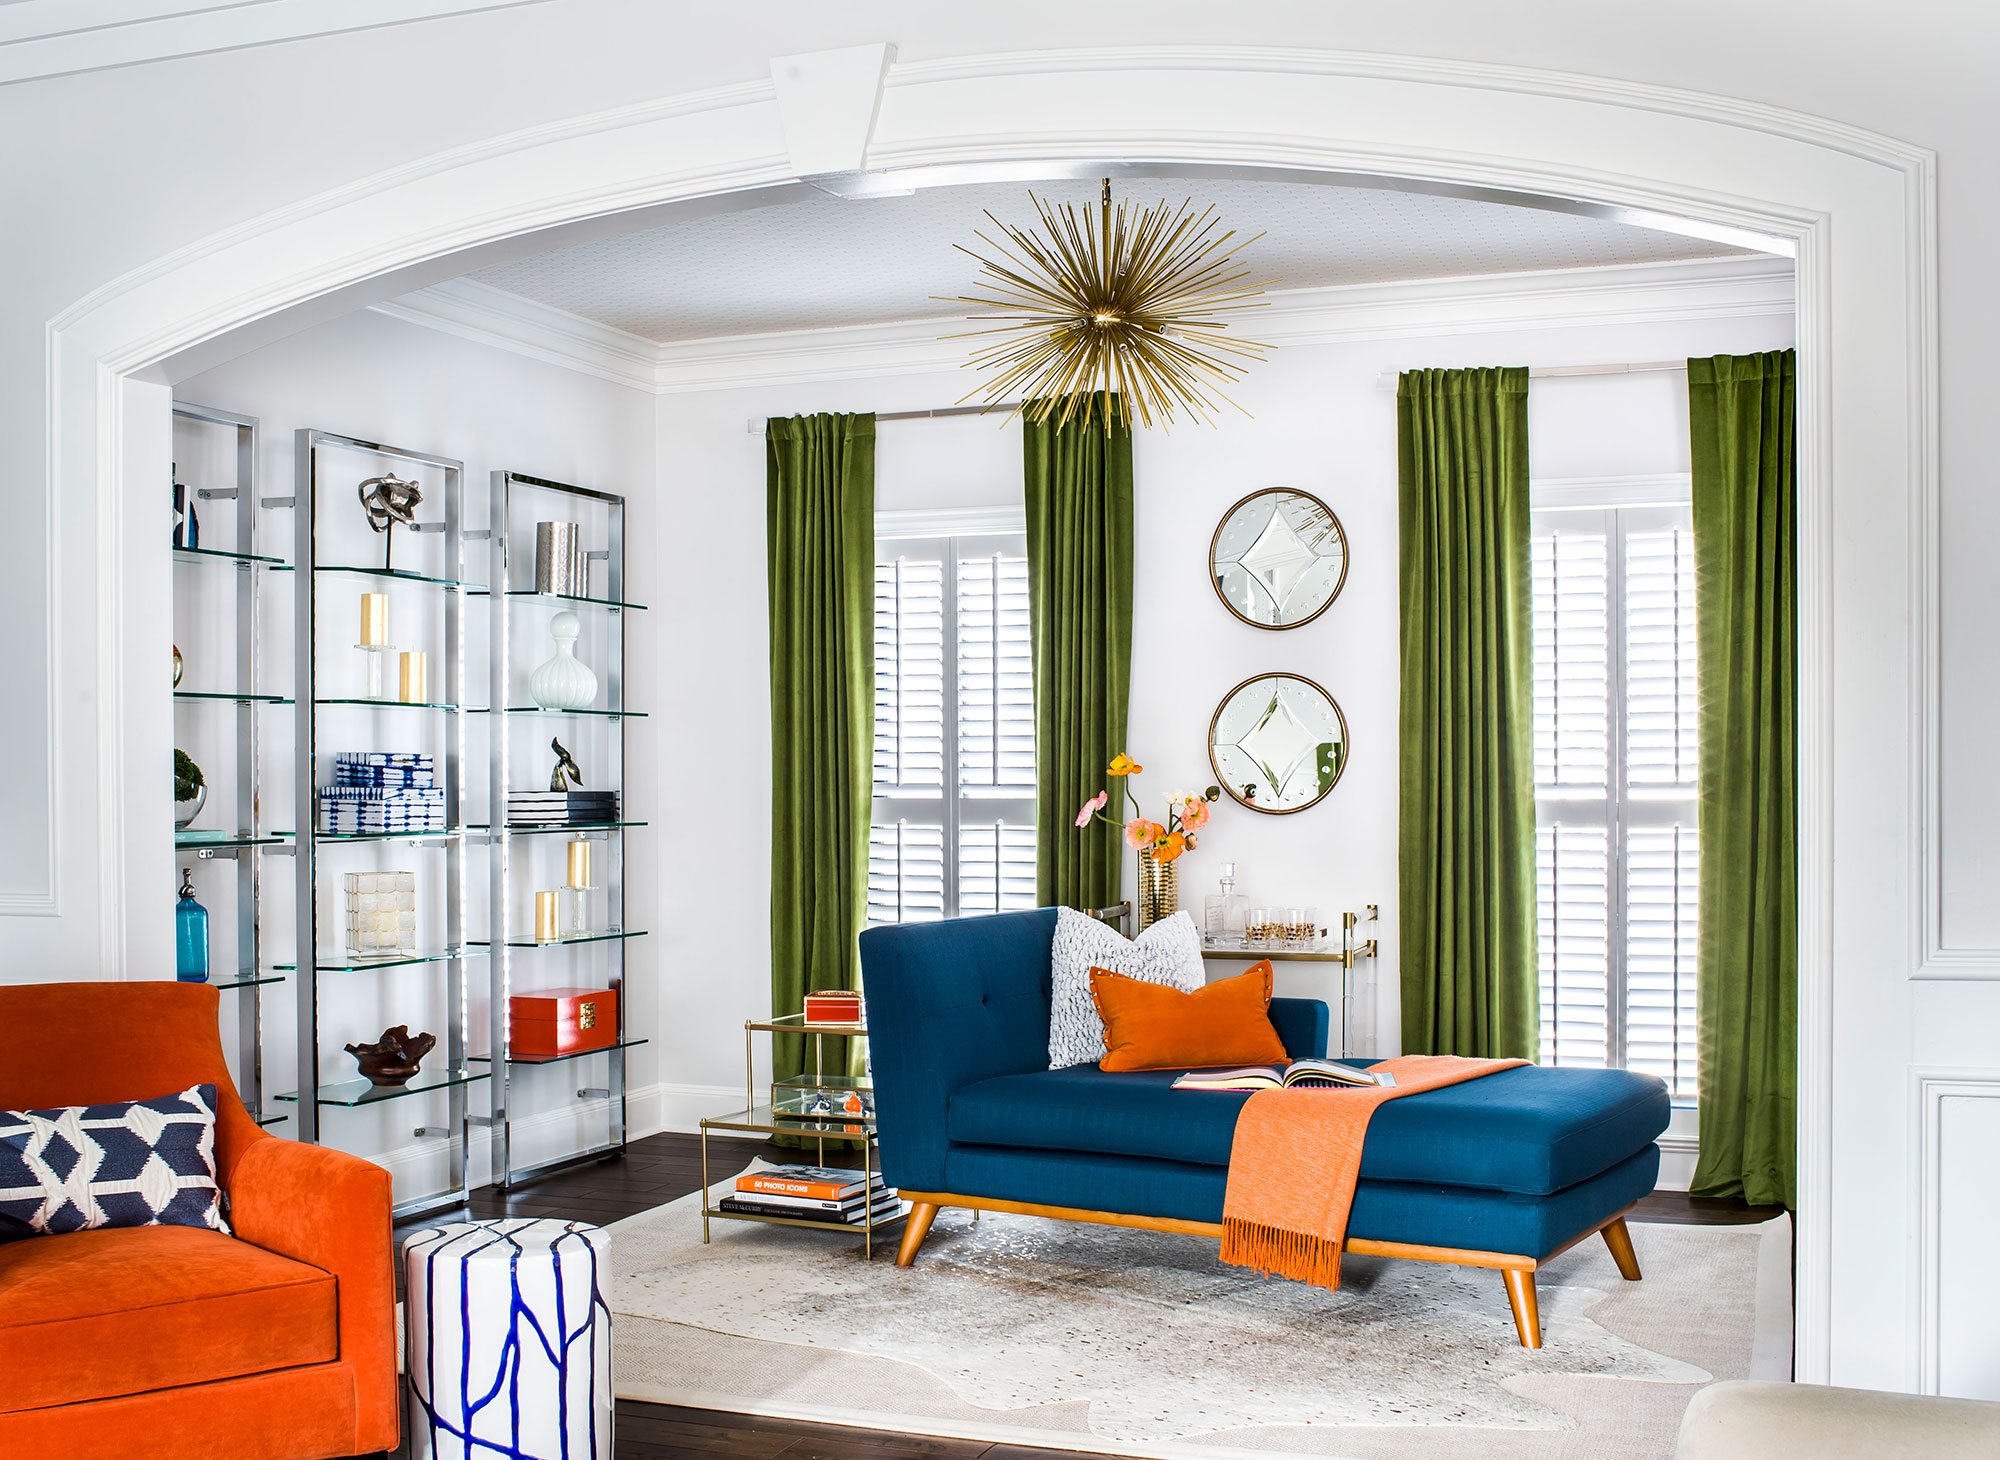 Contemporary sitting room with glass storage, green velvet curtains, and blue midcentury modern chaise